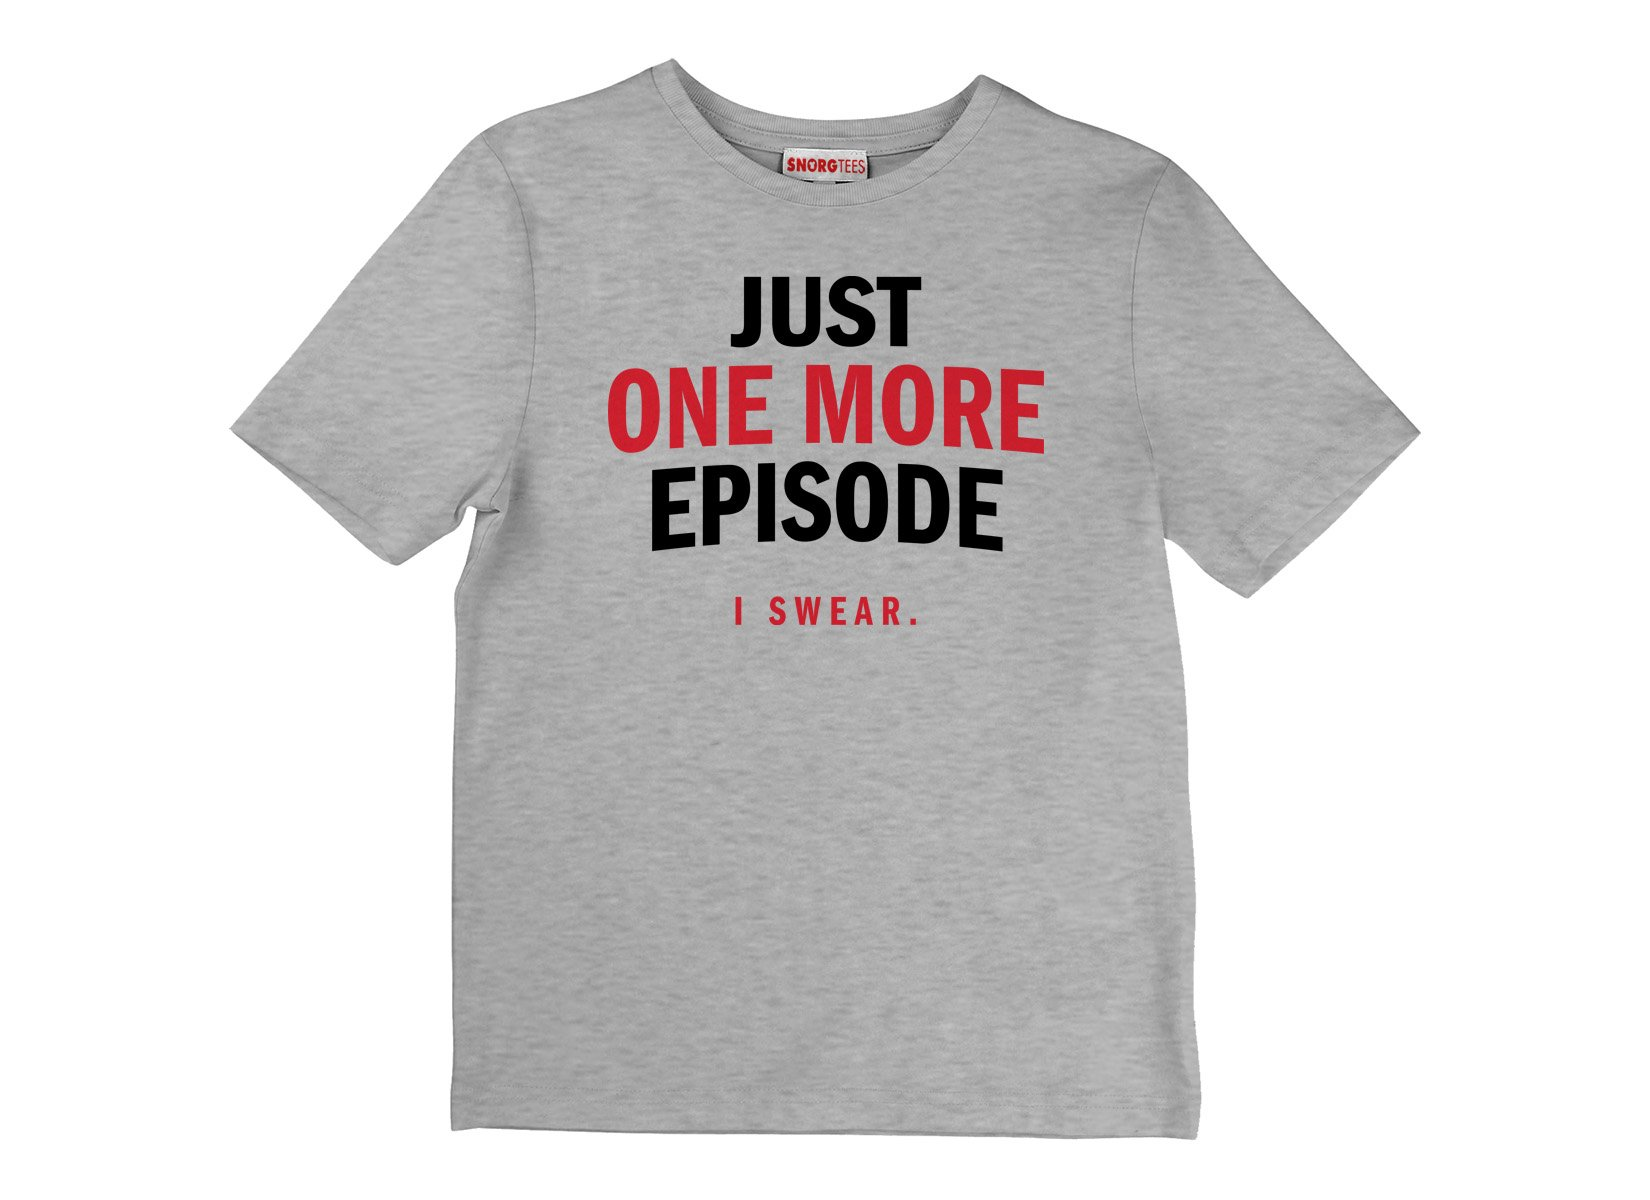 Just One More Episode on Kids T-Shirt